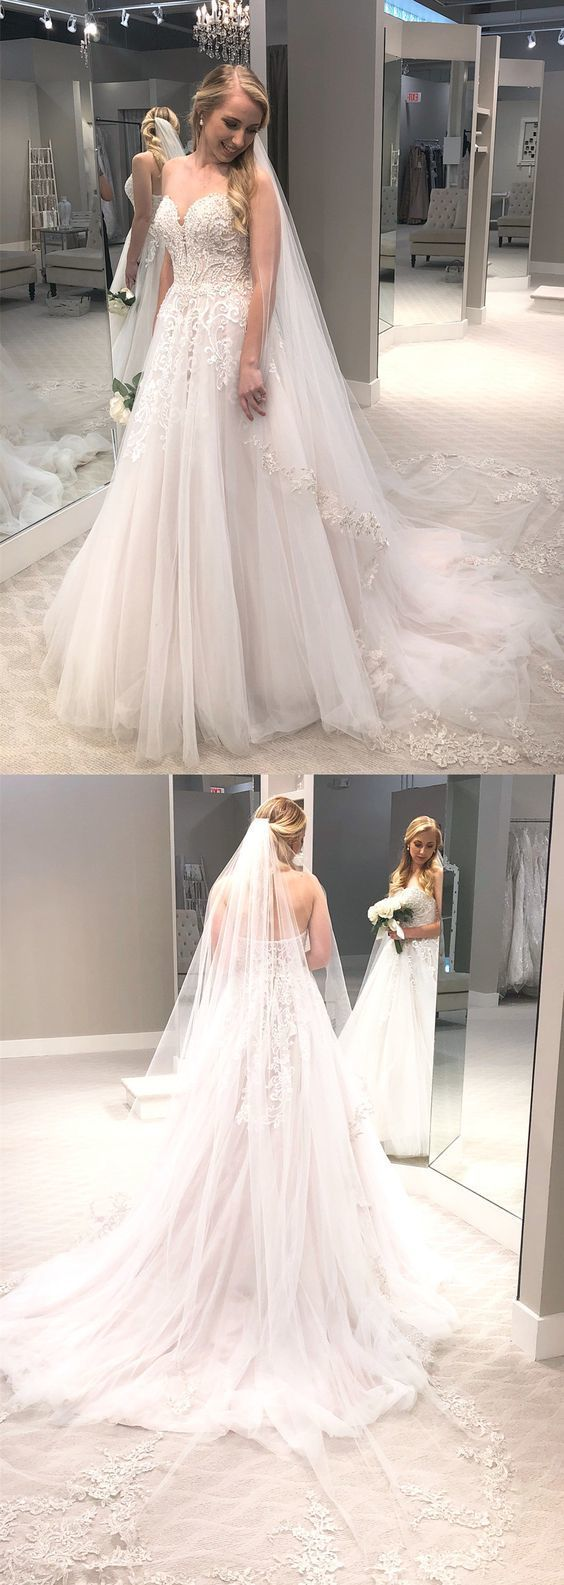 Gorgeous Tulle A Line Wedding Dresses, Sexy Appliques Beads Bridal Gowns